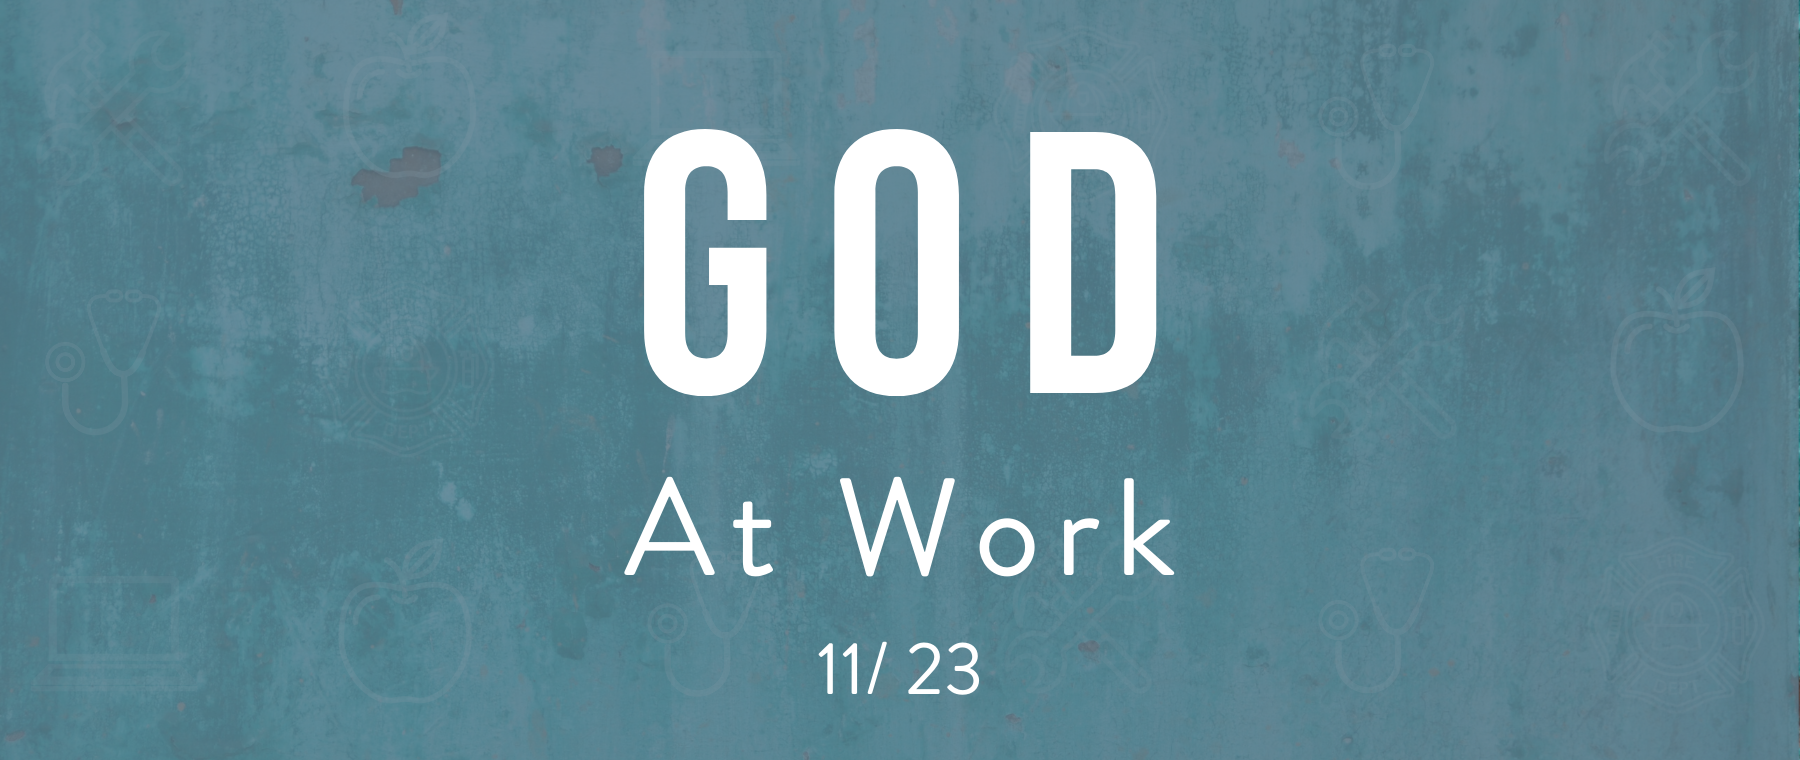 God at Work event